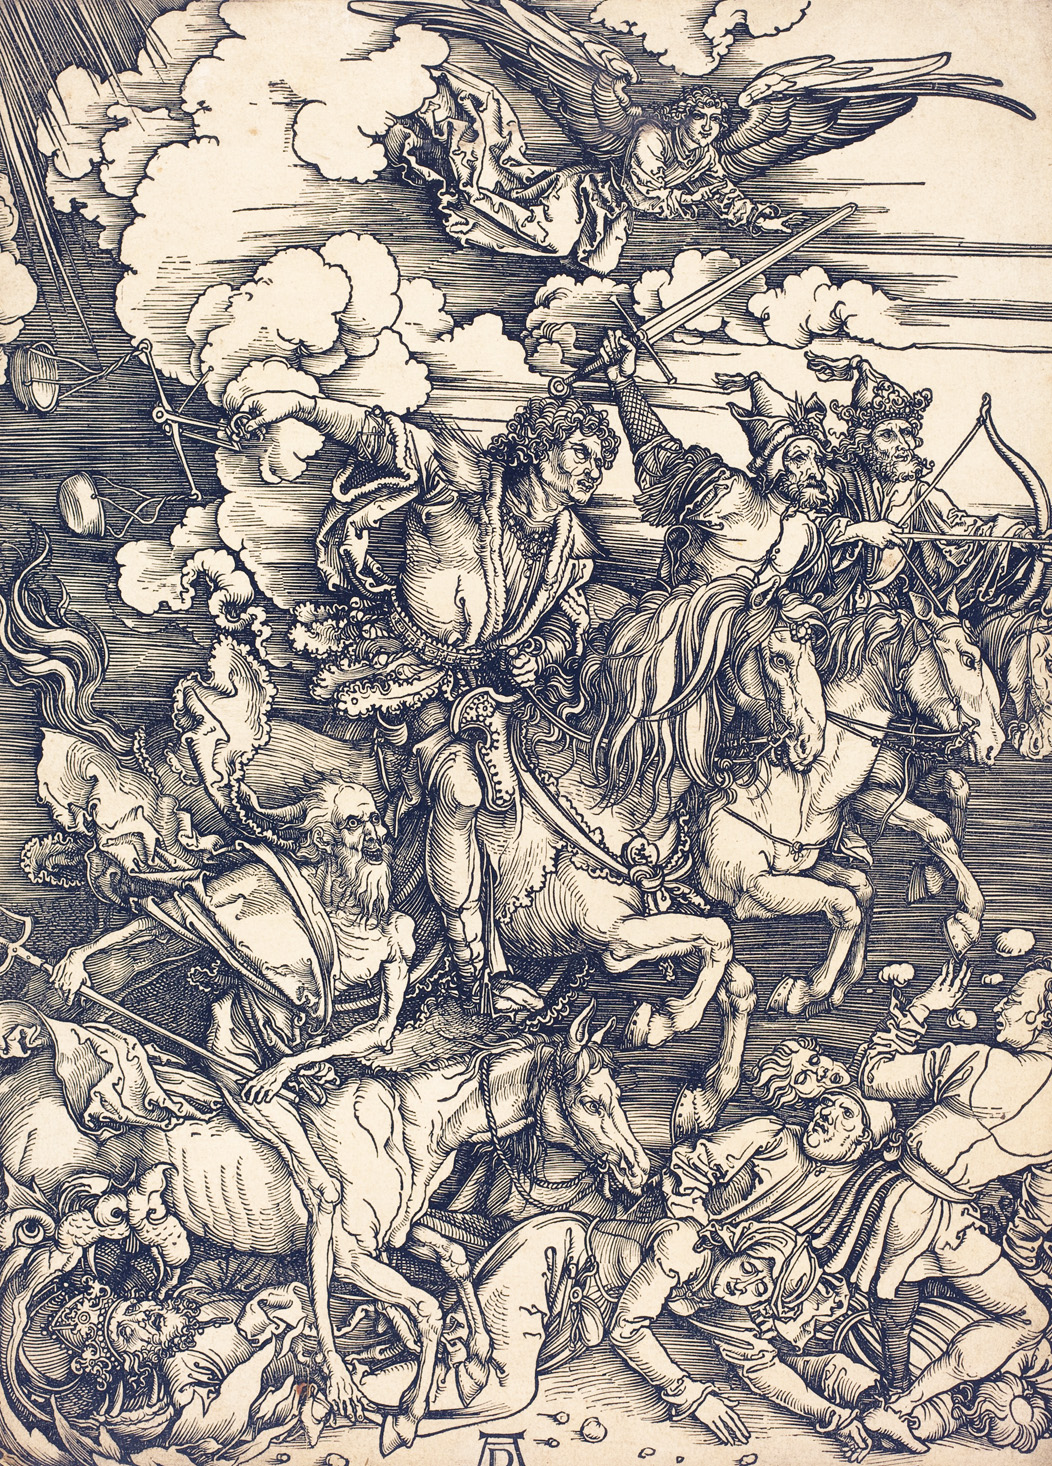 Four Horsemen of the Apocalypse, by Albrecht Dürer, 1498. National Gallery of Art, Washington D.C.